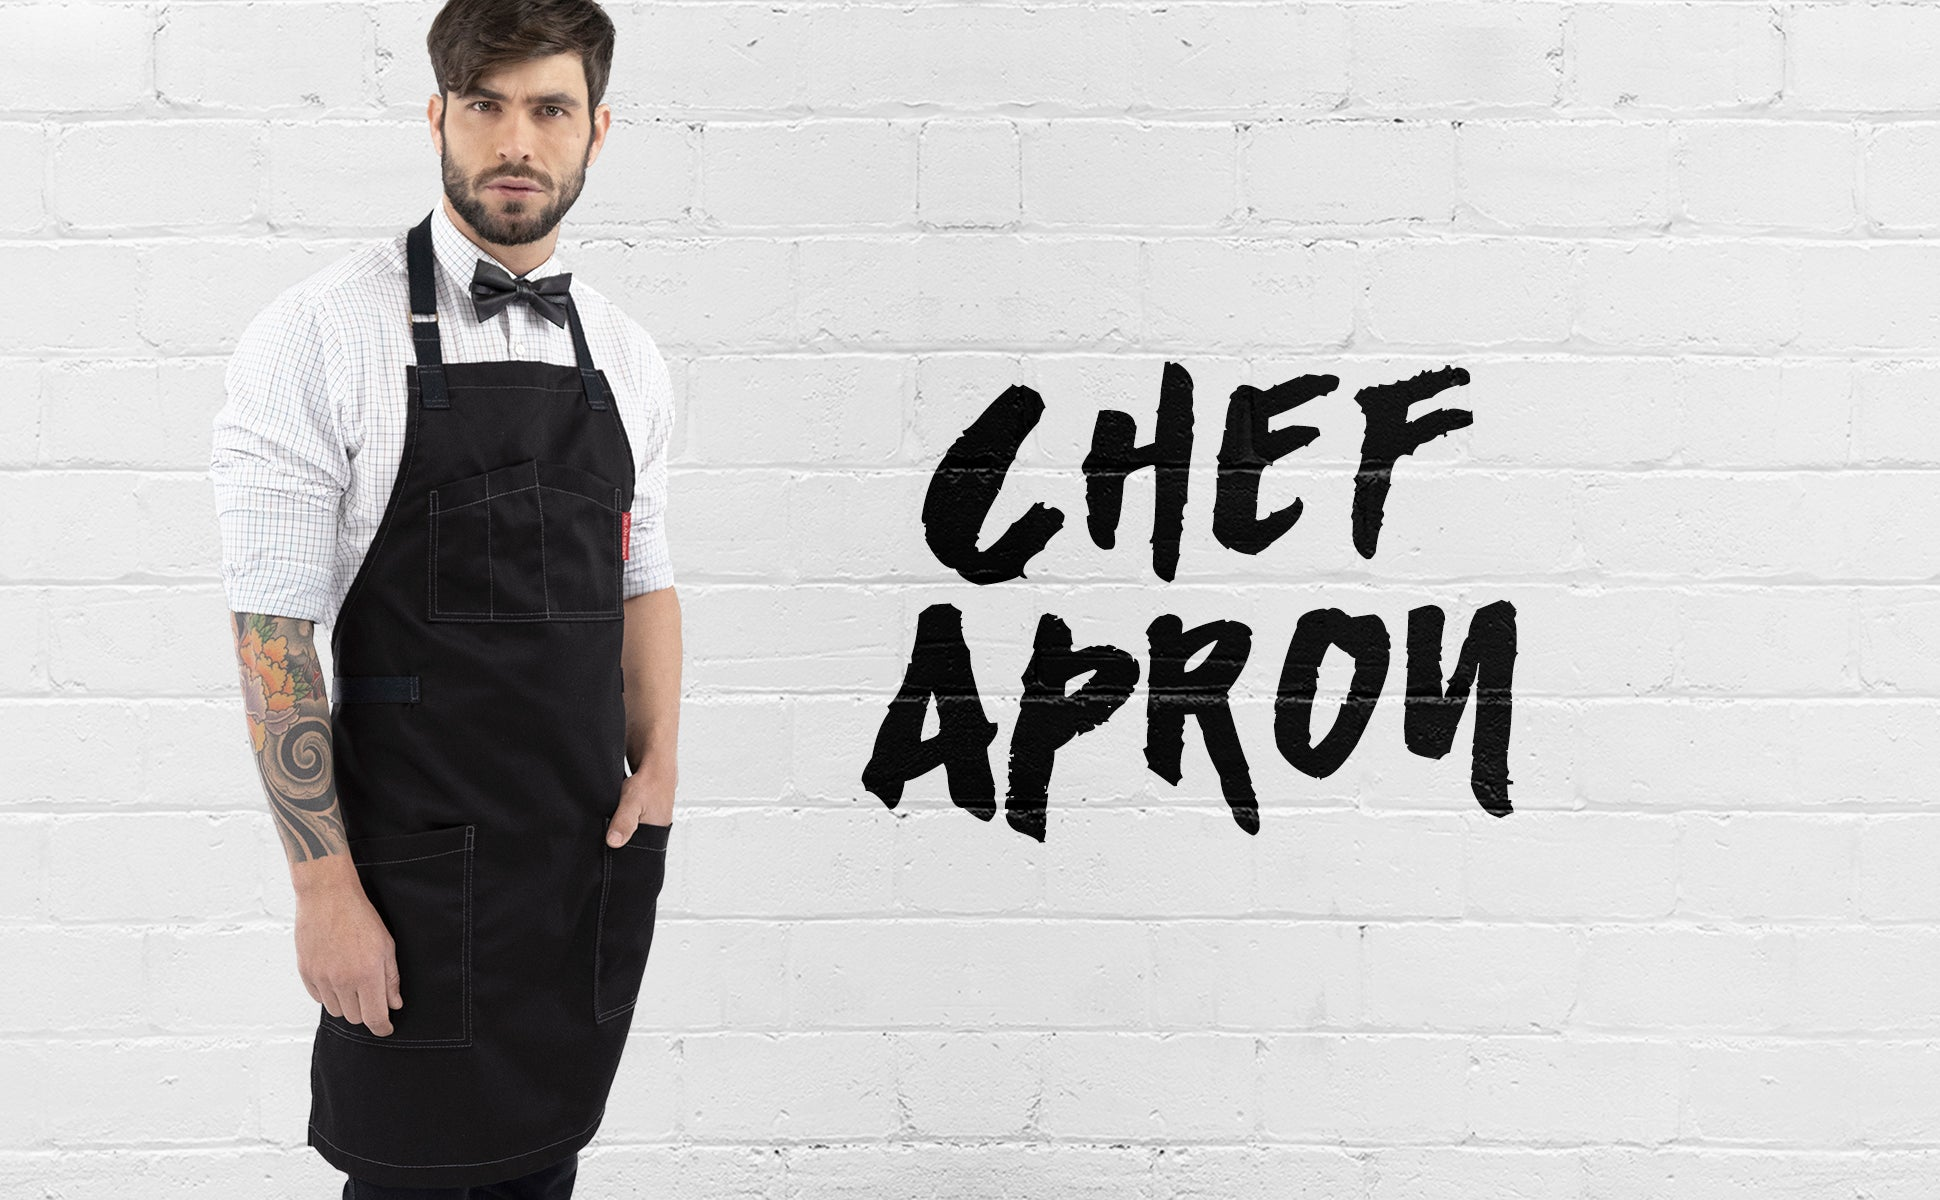 Under NY Sky Chef Apron – Professional Black Twill – Cotton Straps - Smart Pockets